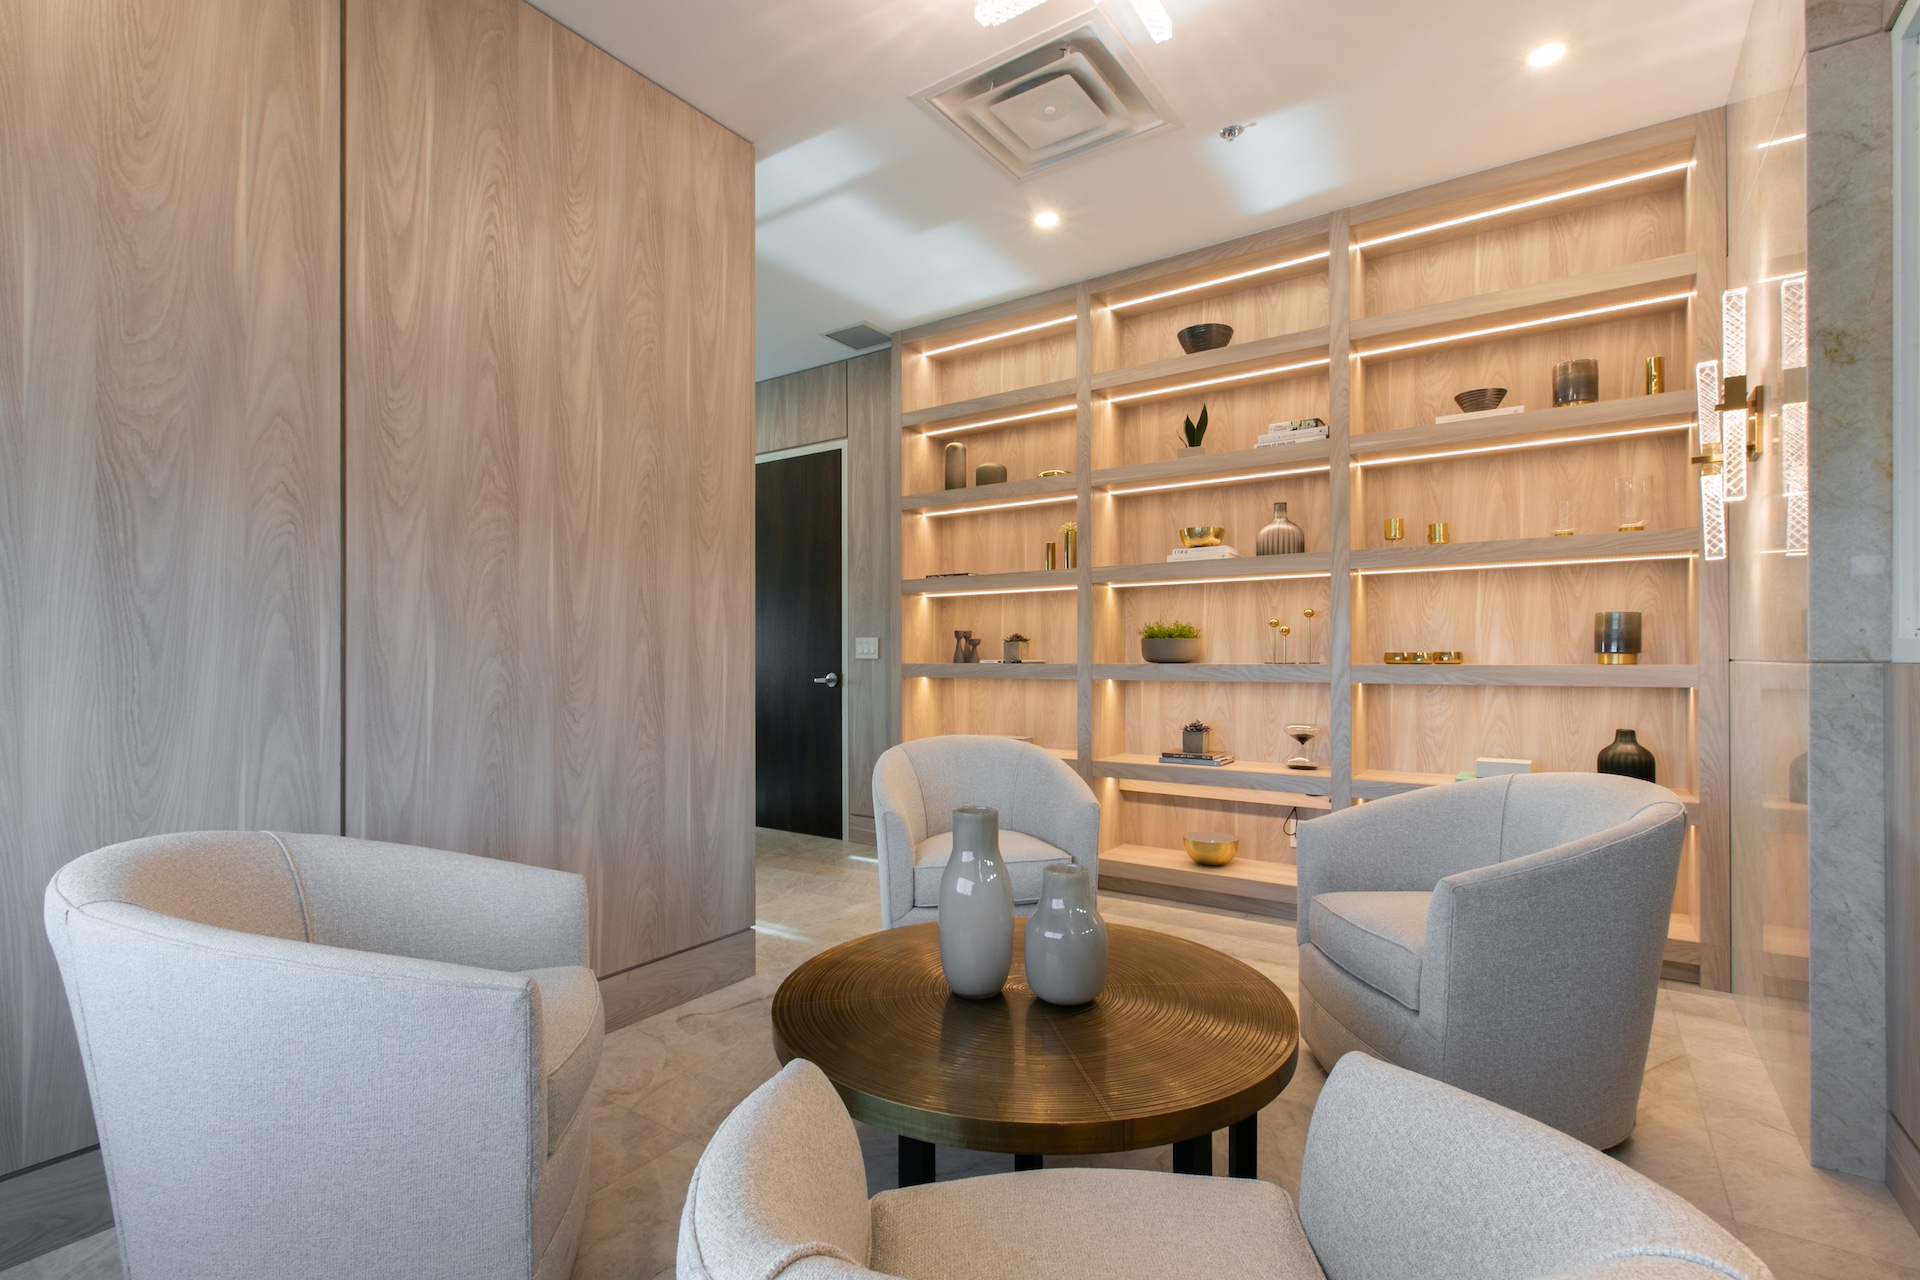 Table, chairs and wood wall shelves